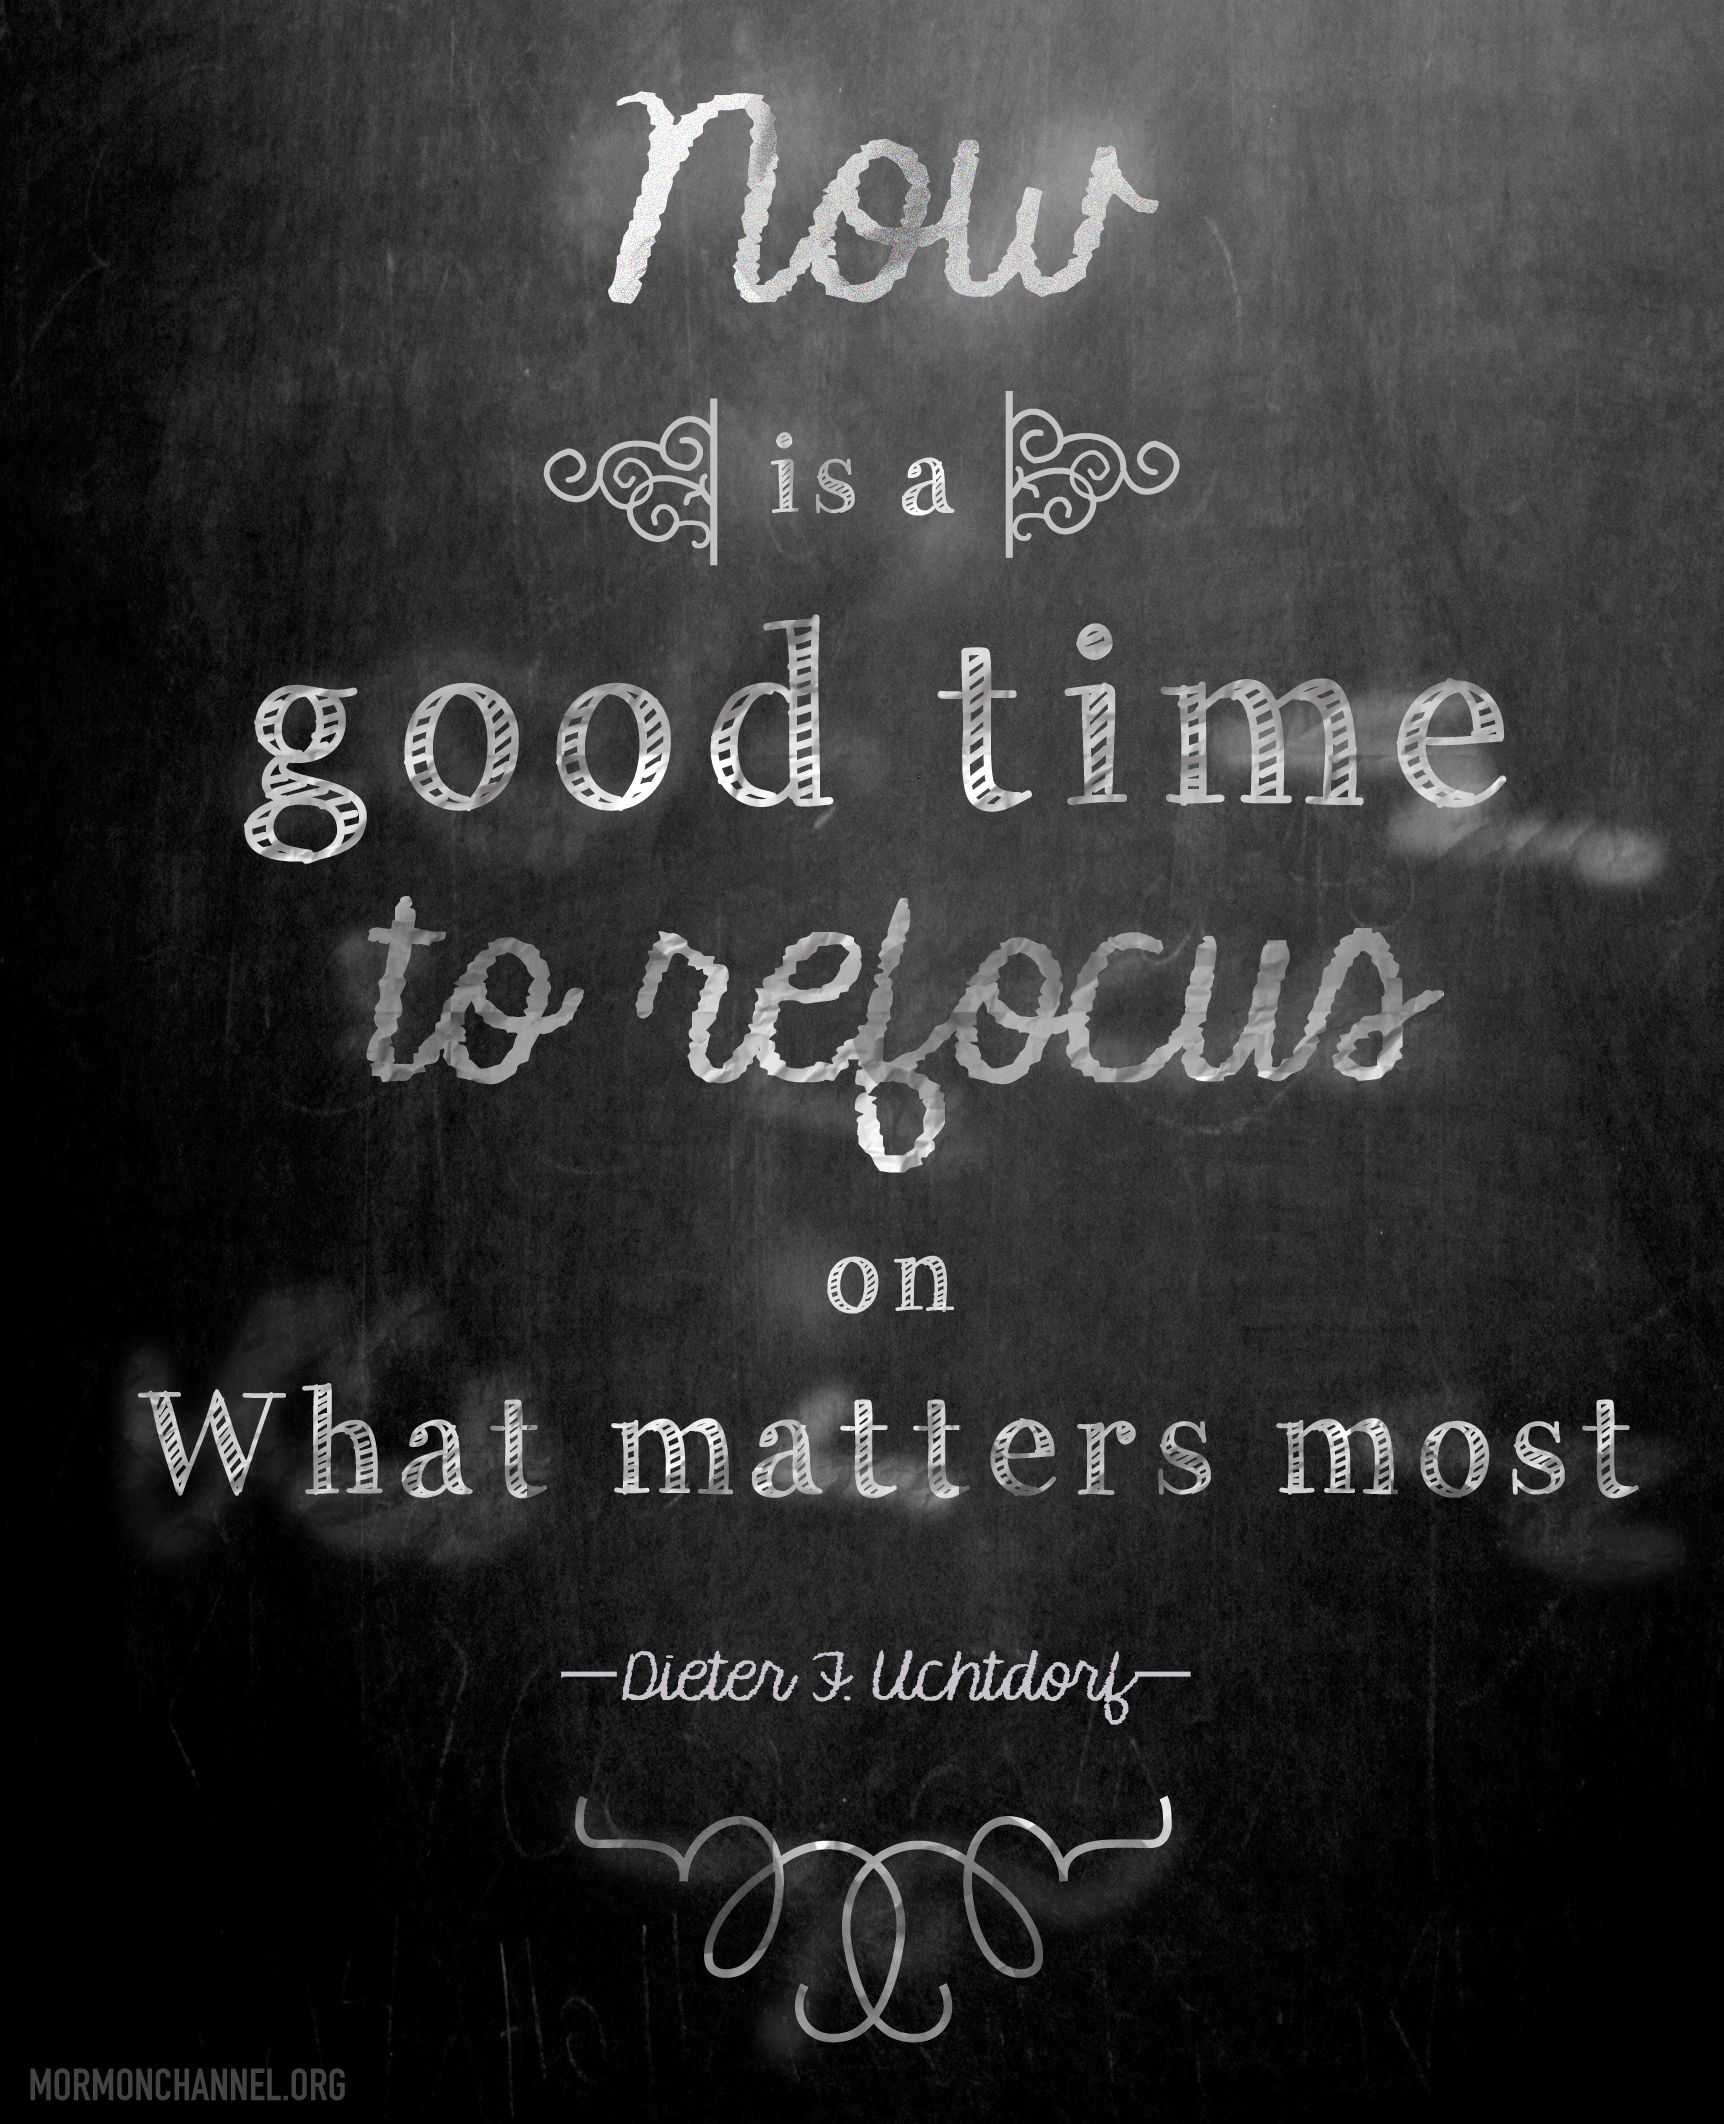 New Year Music Quotes: A Time To Refocus On What Matters